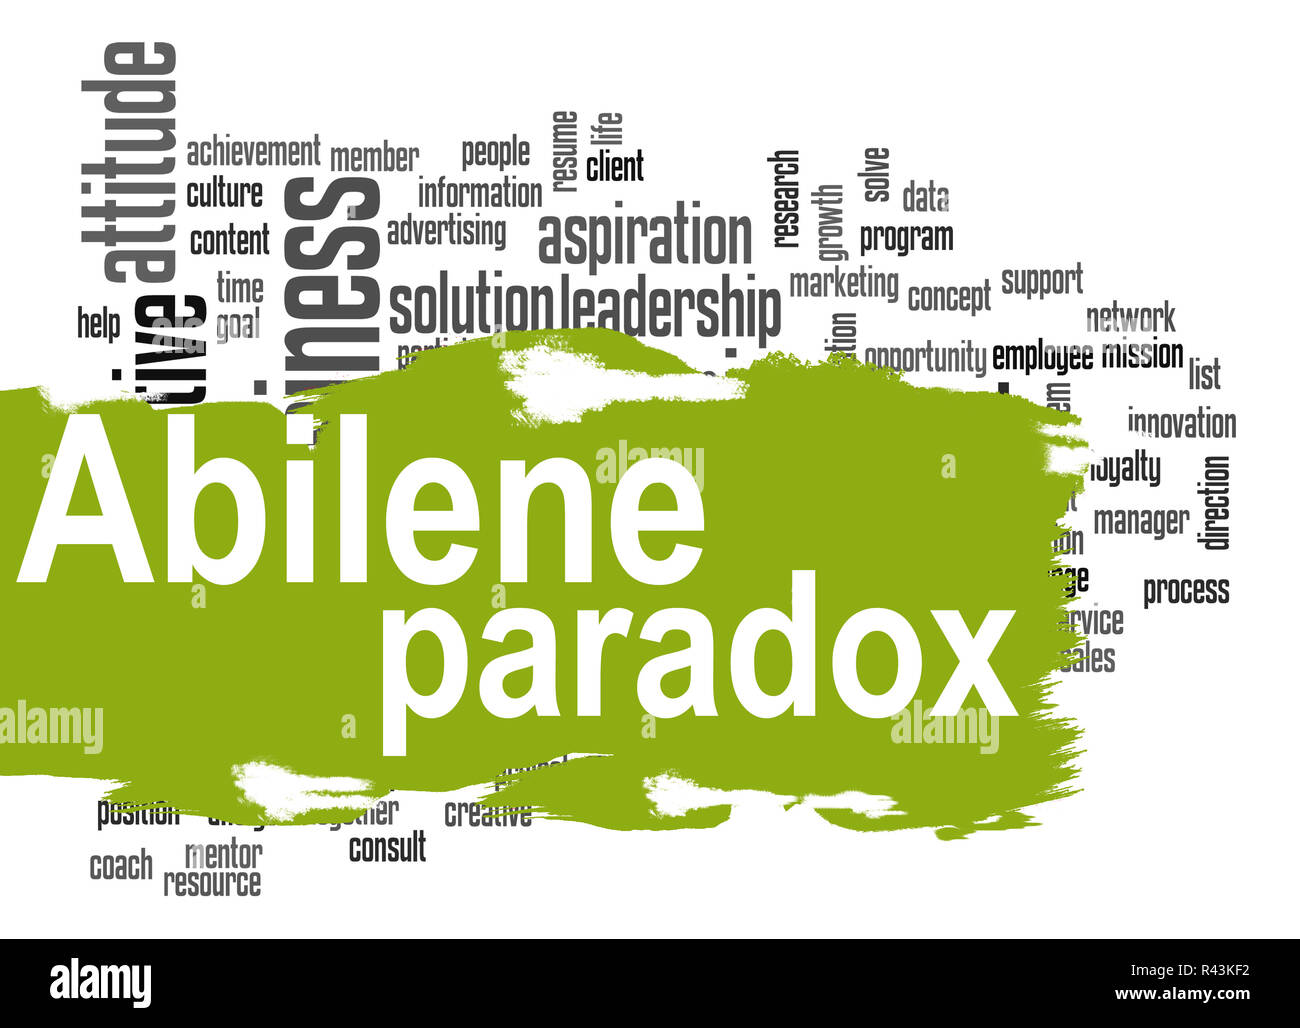 Abilene Paradox word cloud with green banner Stock Photo